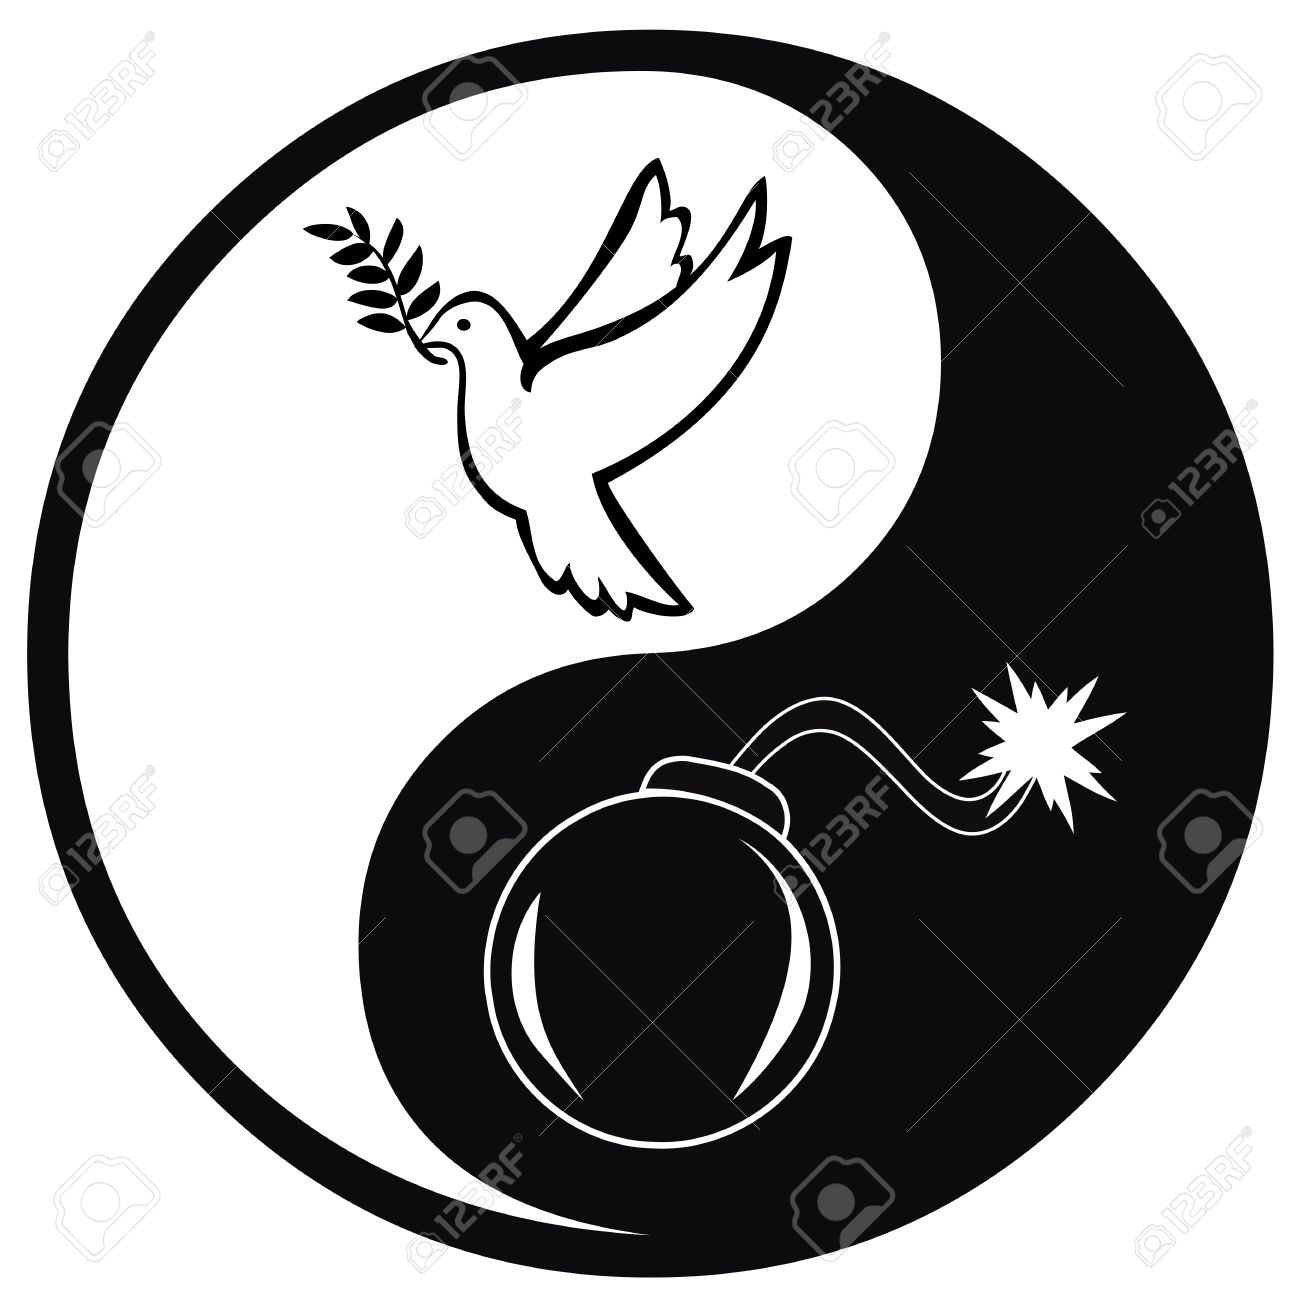 Peace and war symbol and concept sign for pacifism versus warfare peace and war symbol and concept sign for pacifism versus warfare stock photo 63834528 biocorpaavc Images